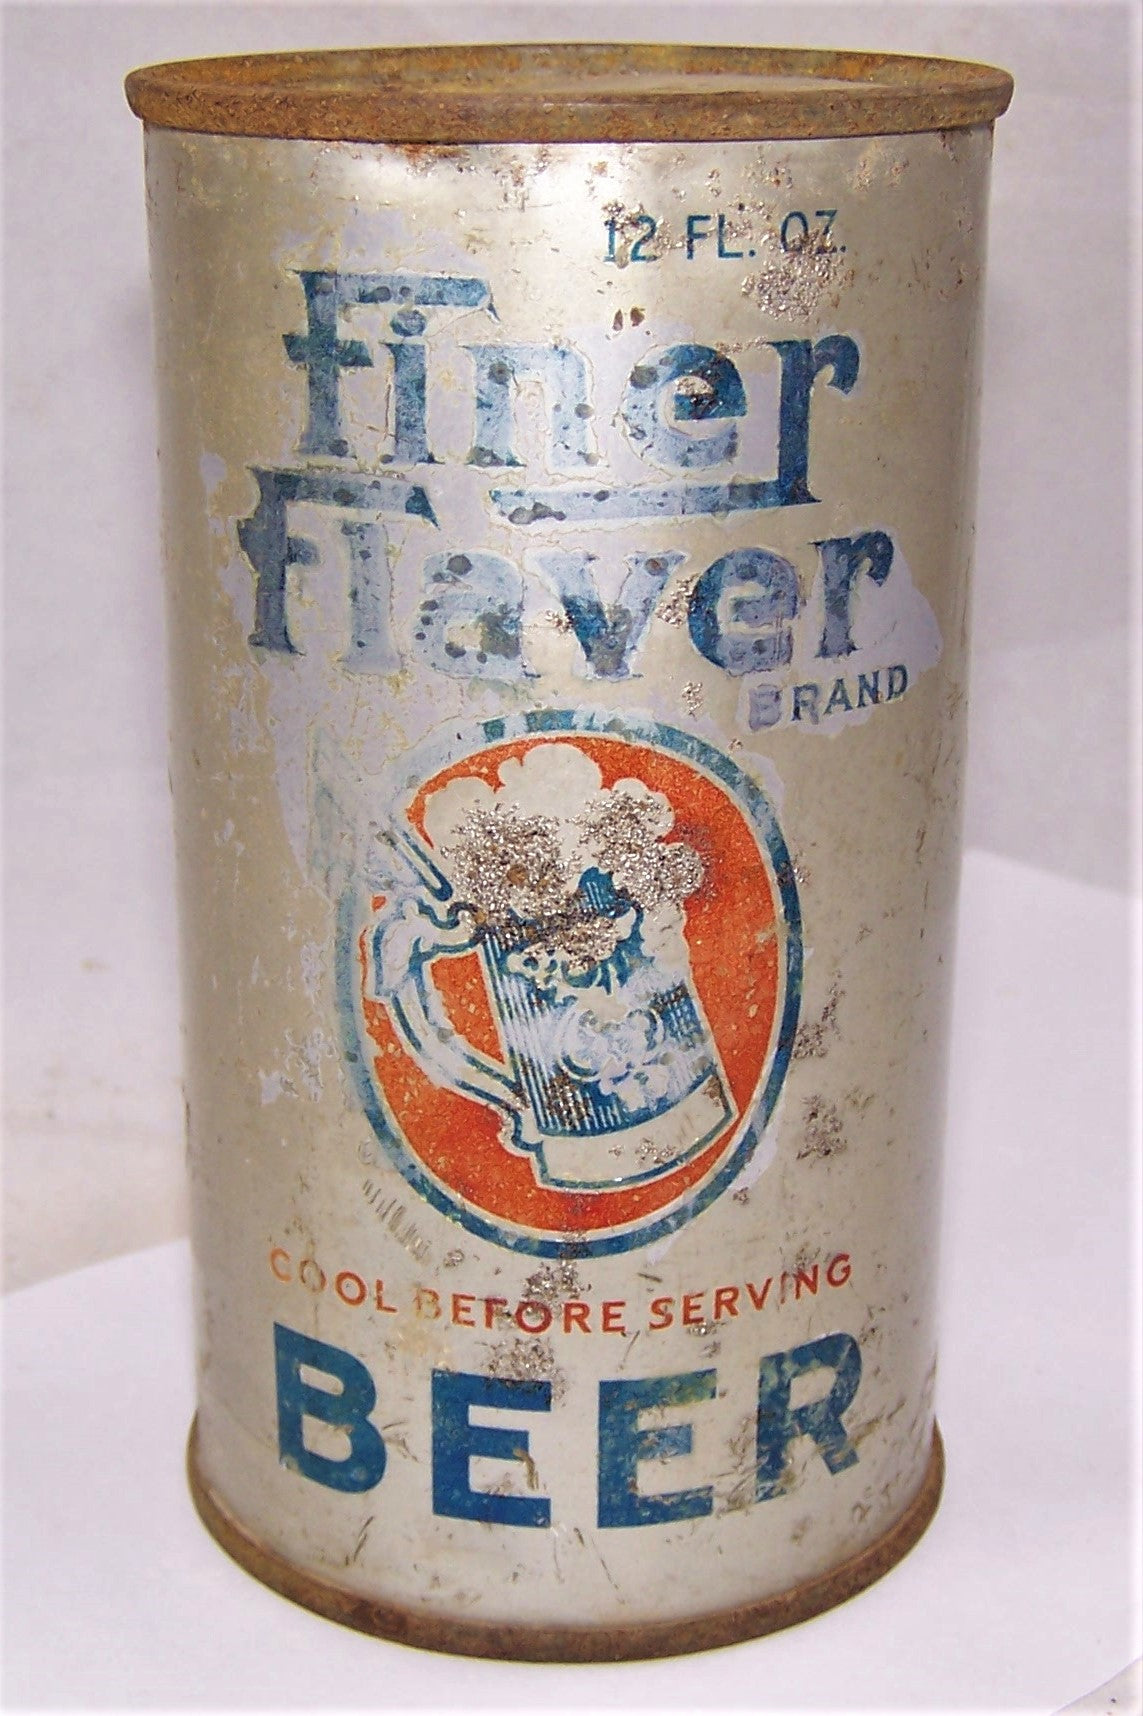 Very Rare Finer Flaver O.I Flat Top Beer Can, Grade 2 Monarch Brewing.